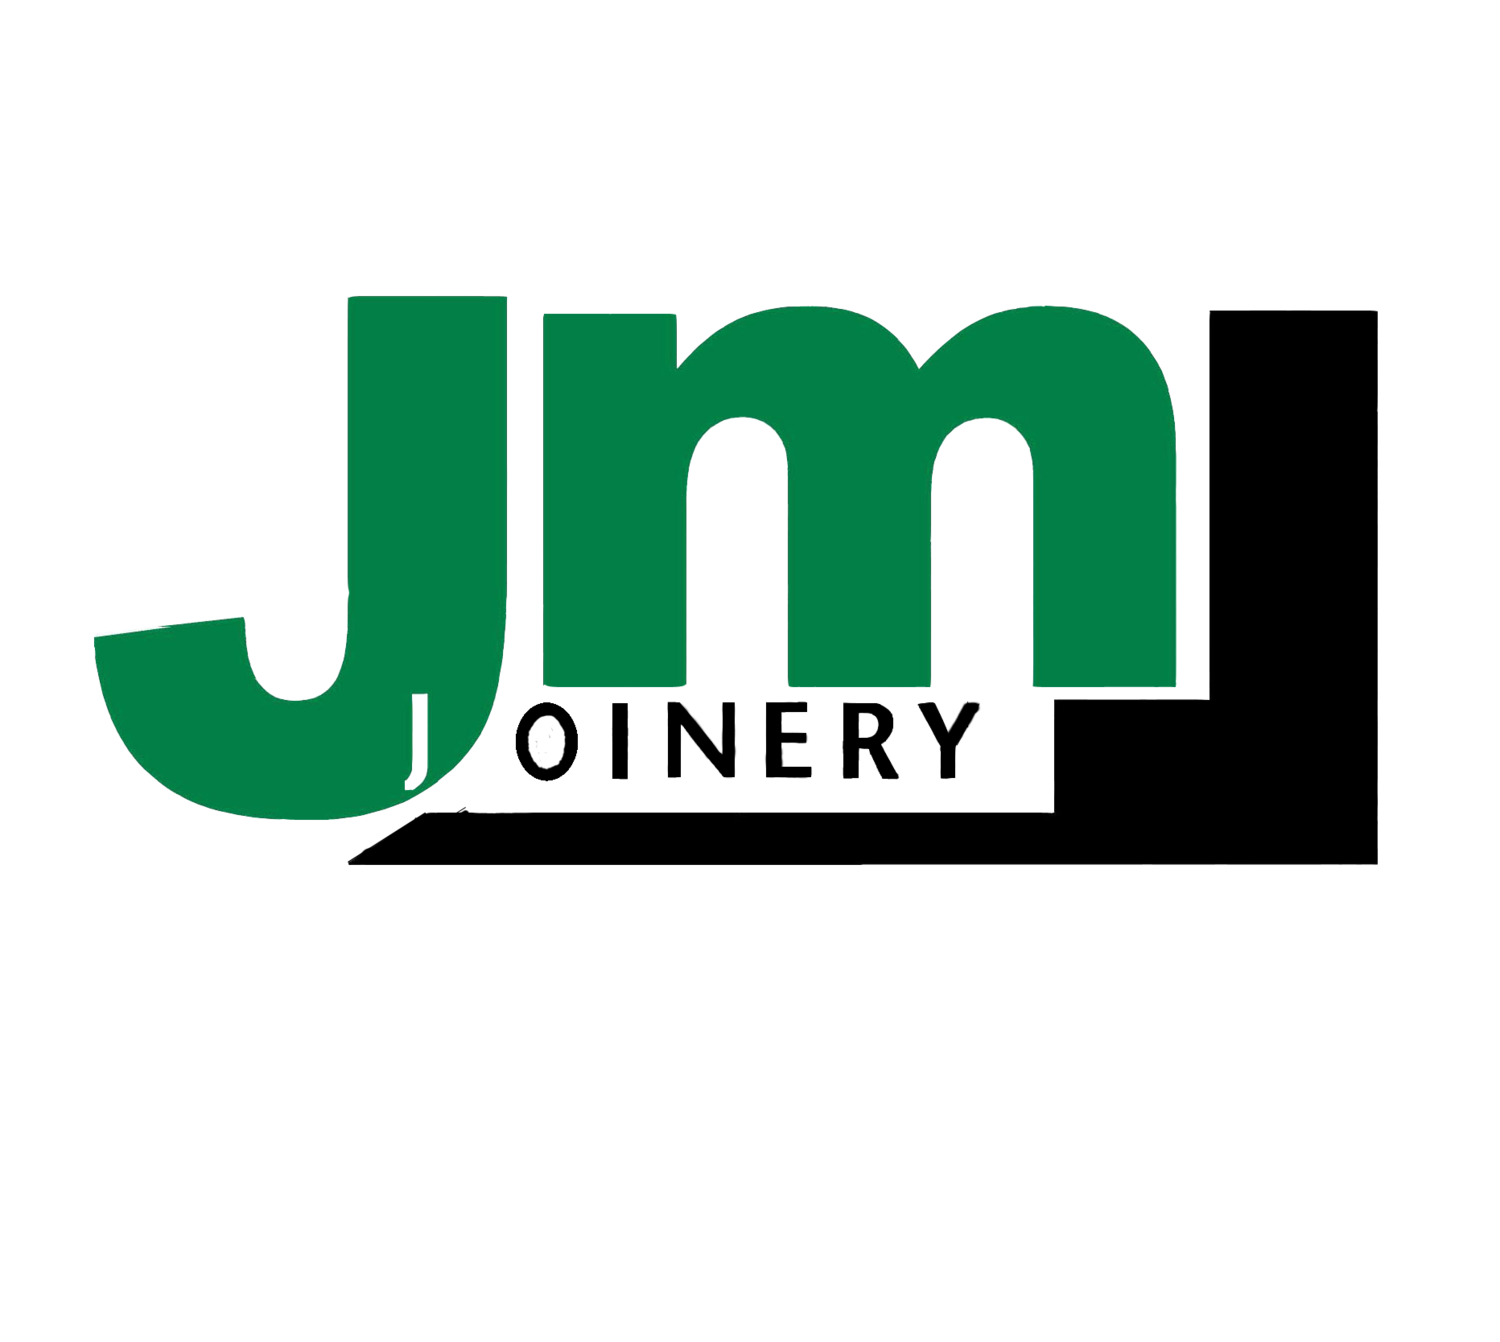 JM Joinery Hereford